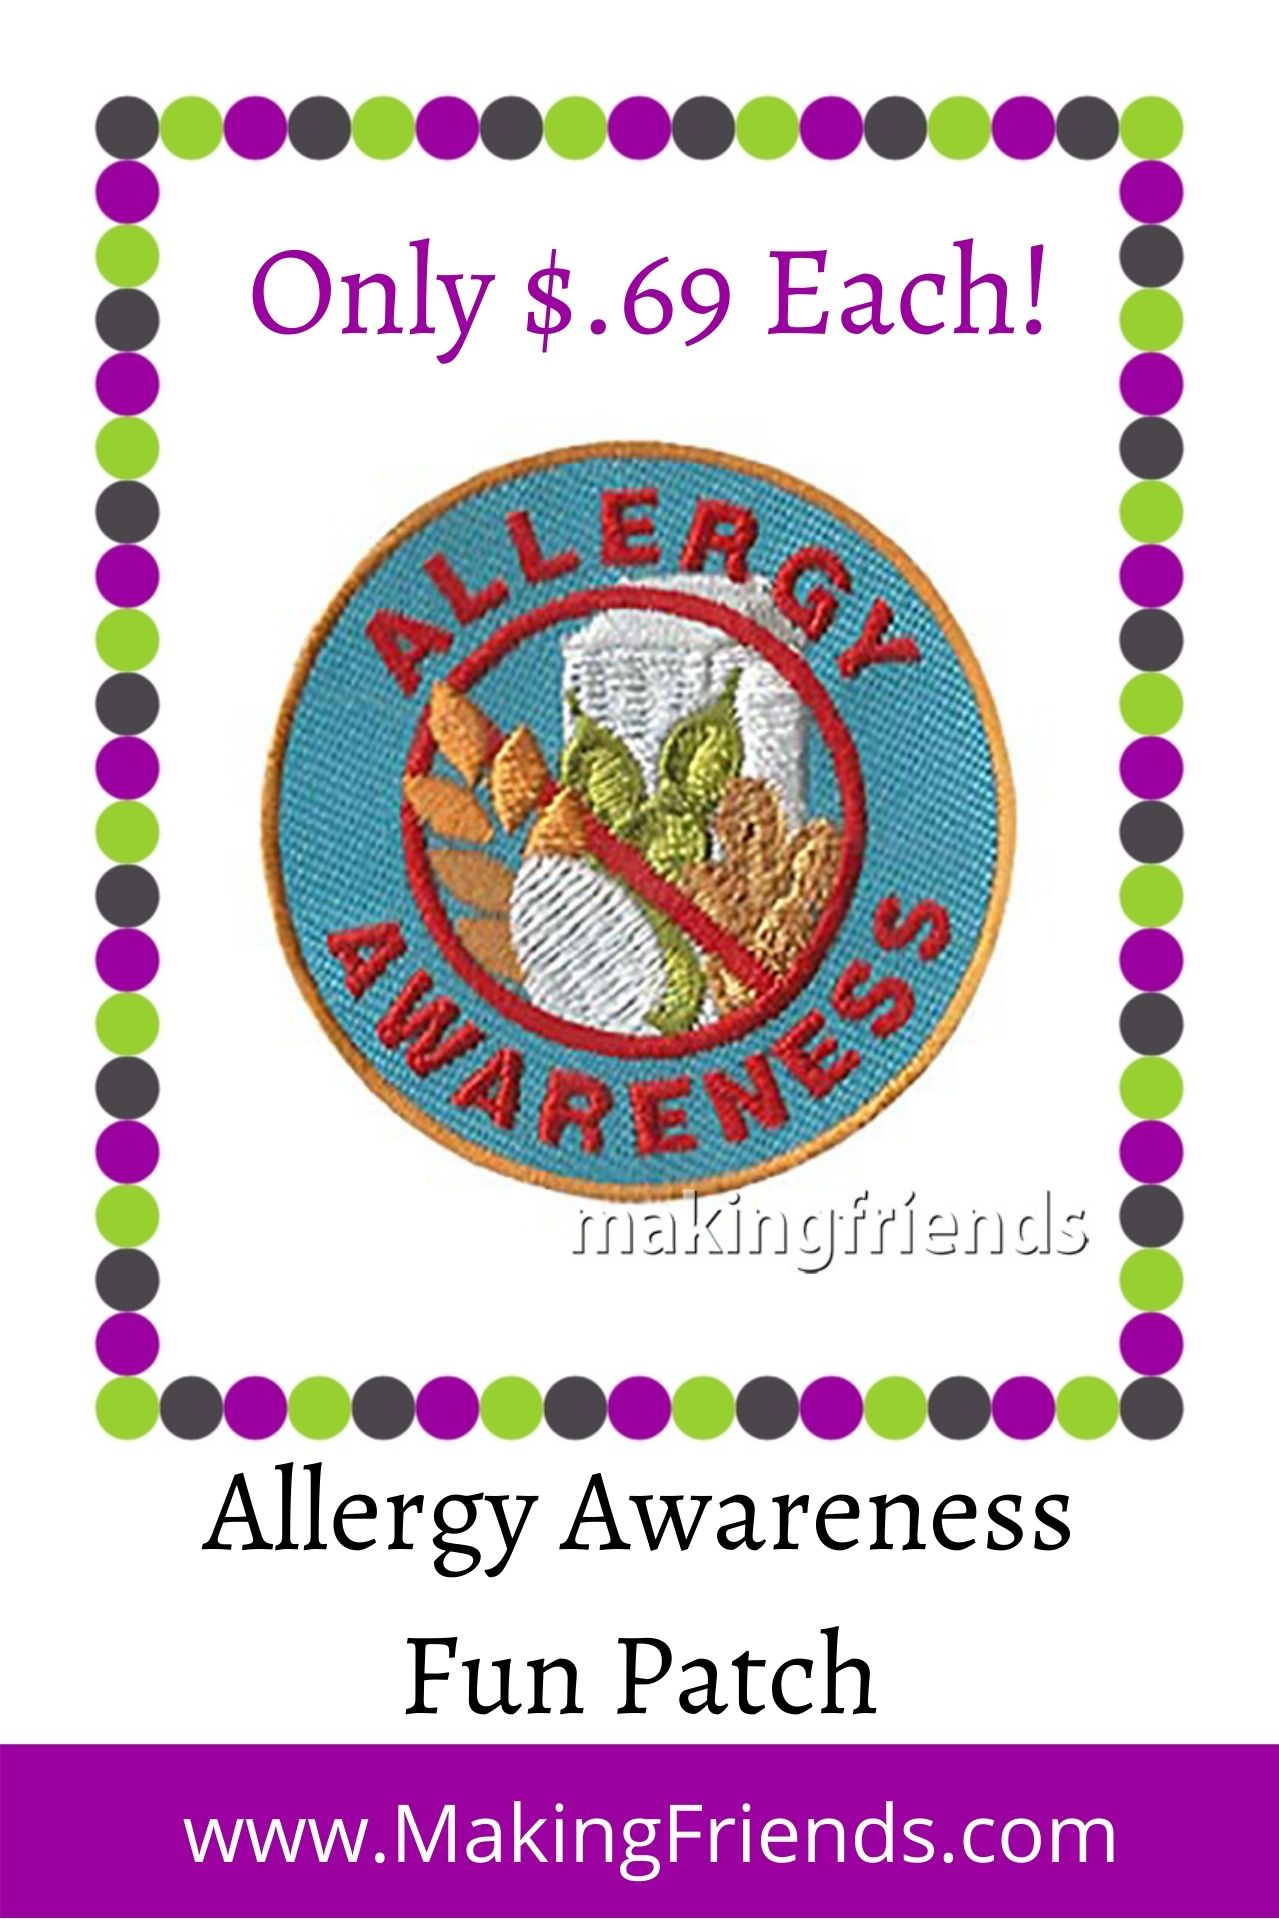 Your troopcan learn about, and help spread awareness about, the seriousness of food allergies with their community! #makingfriends #allergies #foodallergies #awareness #funpatch #girlscouts #scouts #gsfunpatch via @gsleader411